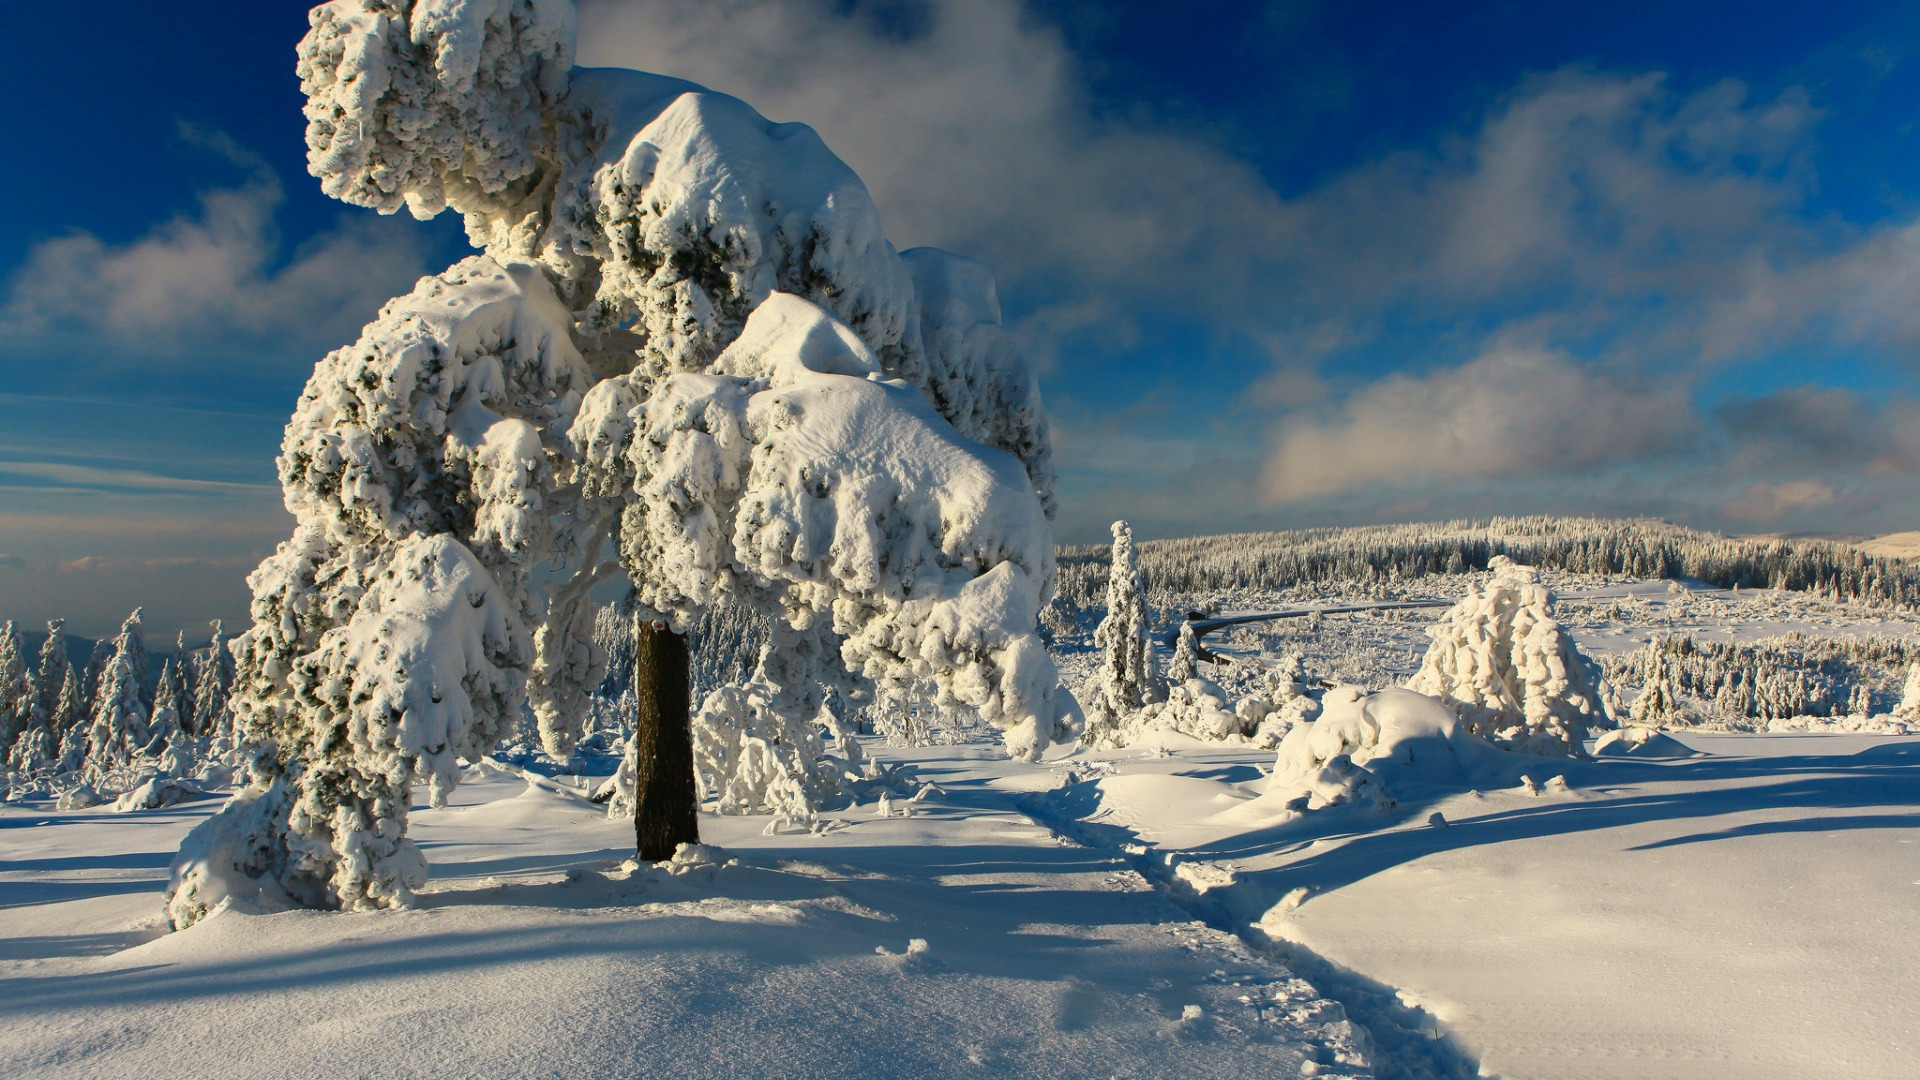 Download-winter-snow-trees-Germany-path-Germany-Black-Forest-The-black-forest-sect-wallpaper-wp3605139